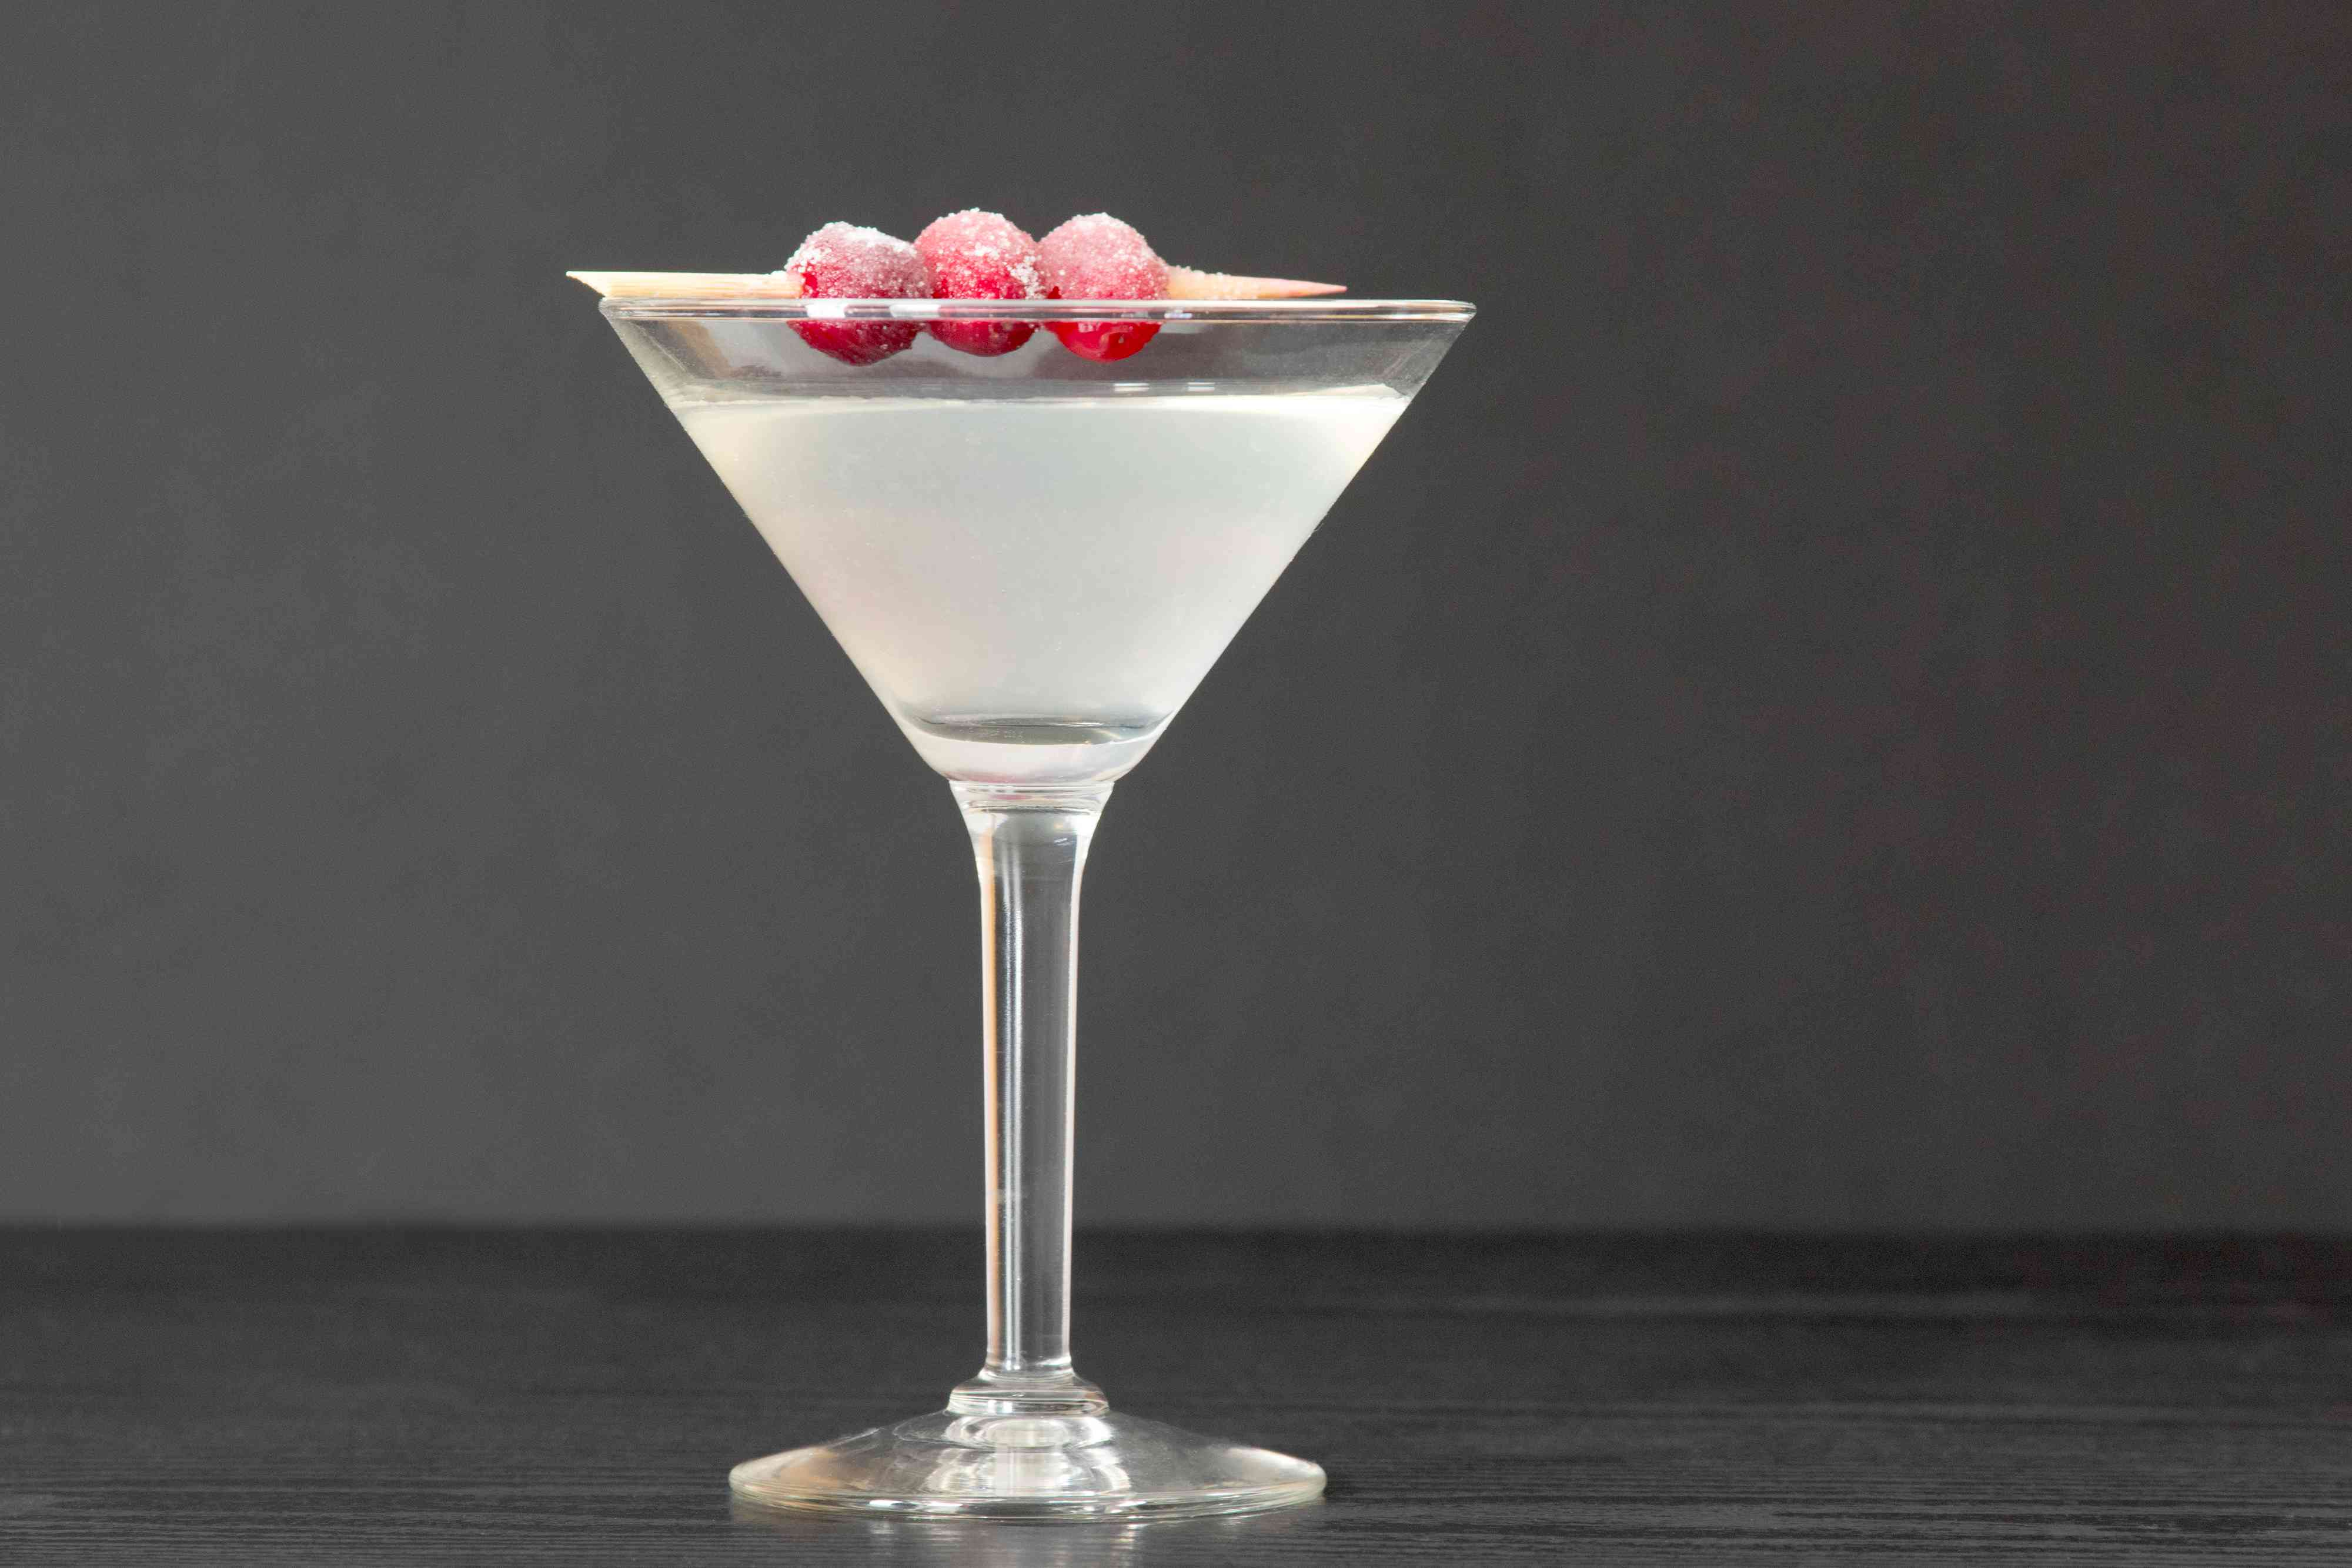 White Cosmo Cocktail With Sugar-Dusted Cranberry Garnish